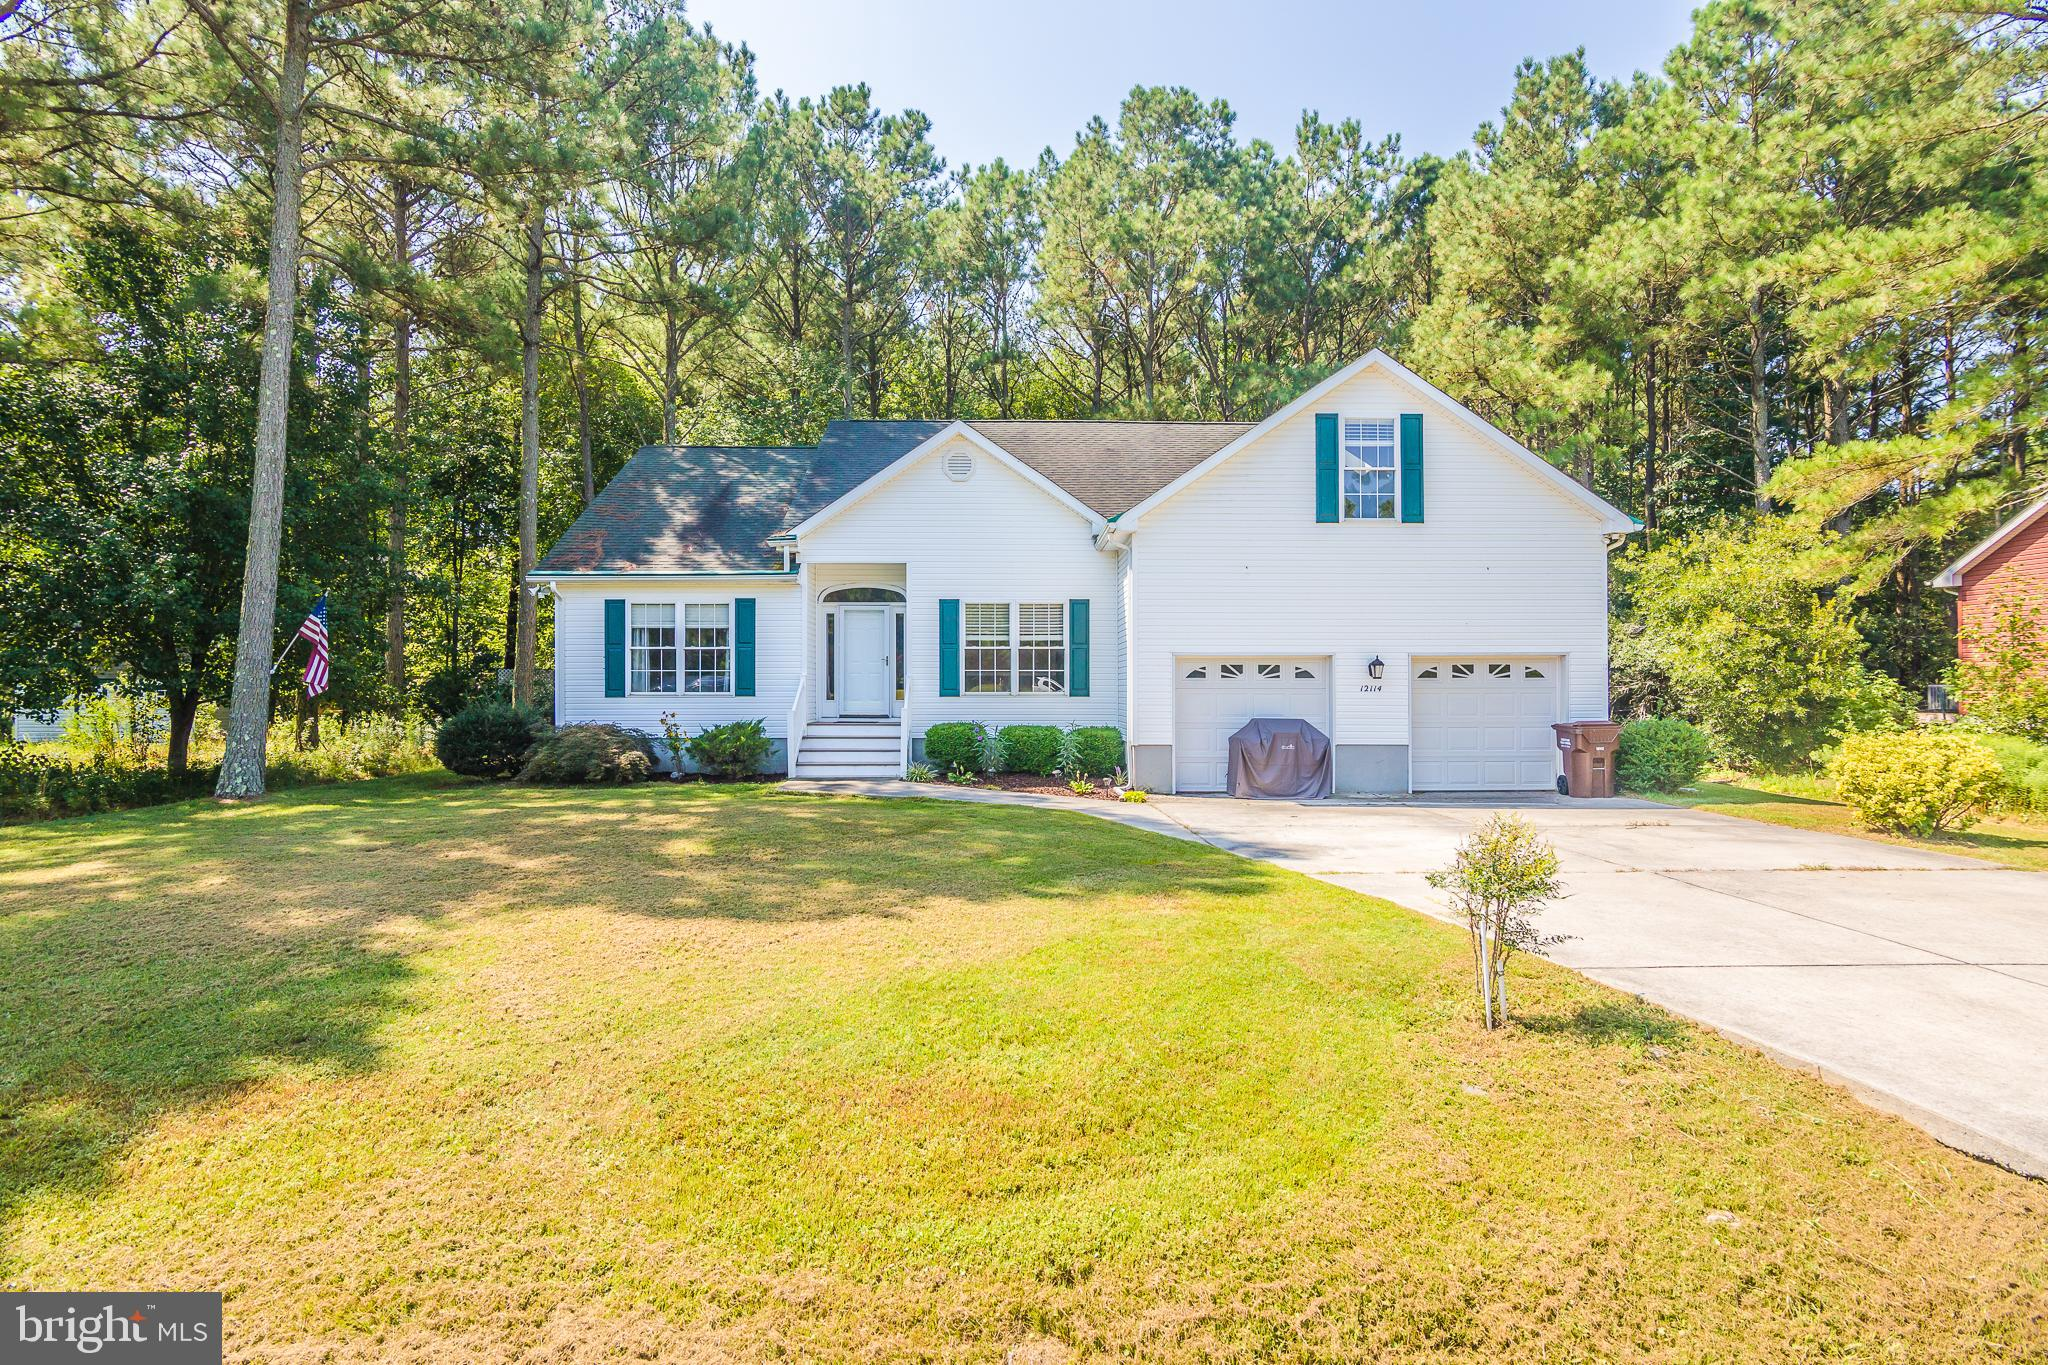 Affordable living close to Ocean City,  Assateague Island and Berlin. First floor master suite - open living room to kitchen area with porch on rear viewing fenced yard. behind the yard is all woods for privacy.  3 bedrooms and bath on second floor.  Beautiful floors on 1st floor and carpet on the 2nd floor.  Live in nice community of homes with NO HOA fees.  Not in flood zone!  Plus 2 car garage.  Occupied, by appt only.